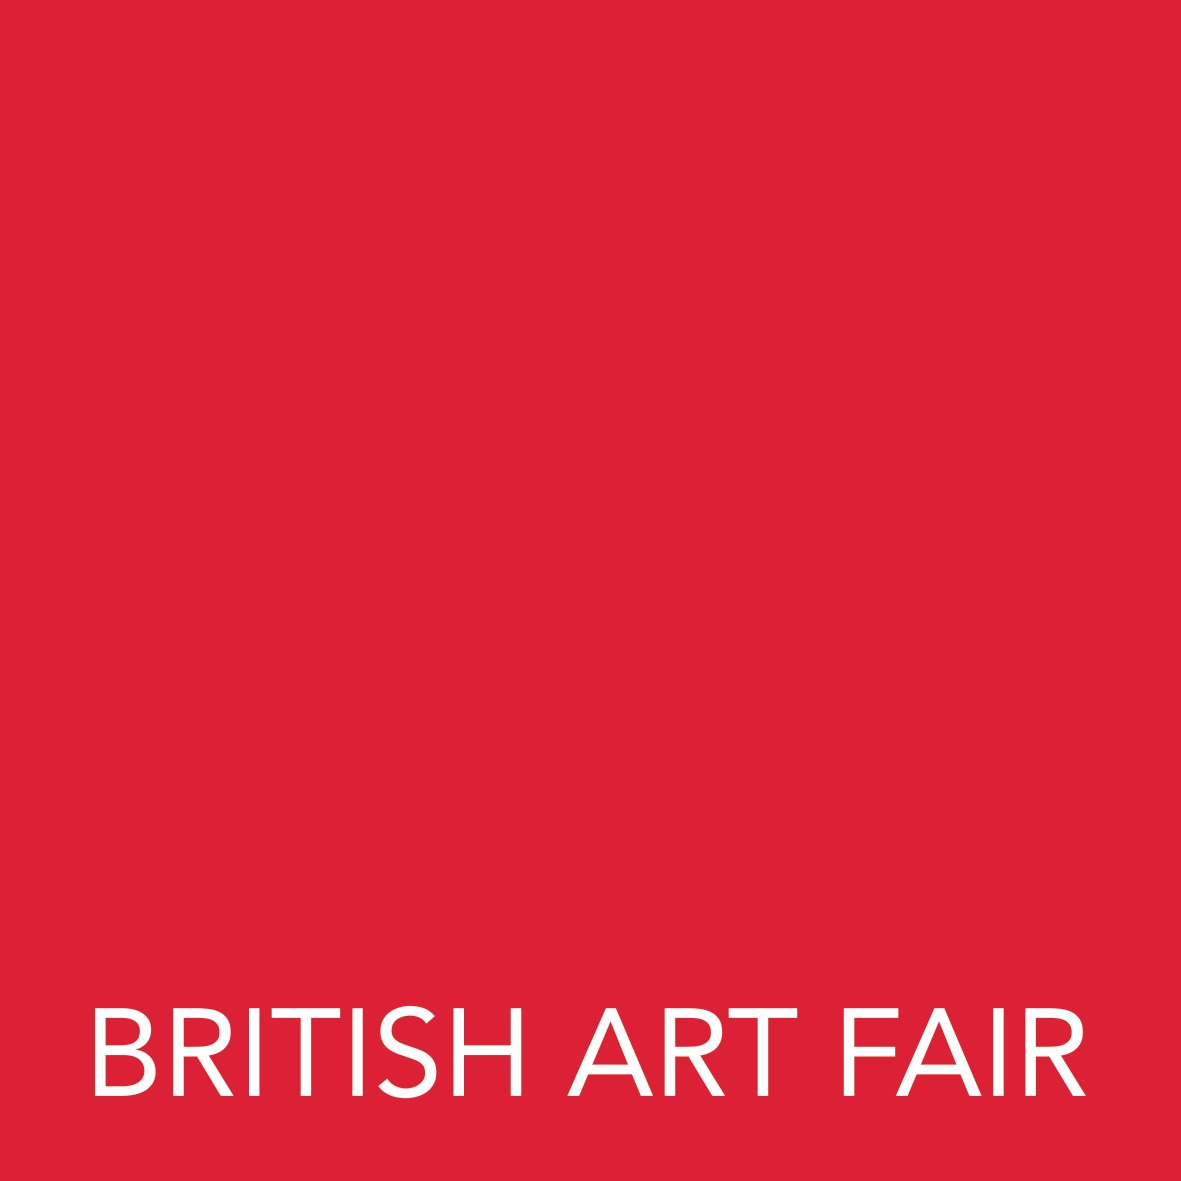 BRITISH ART FAIR